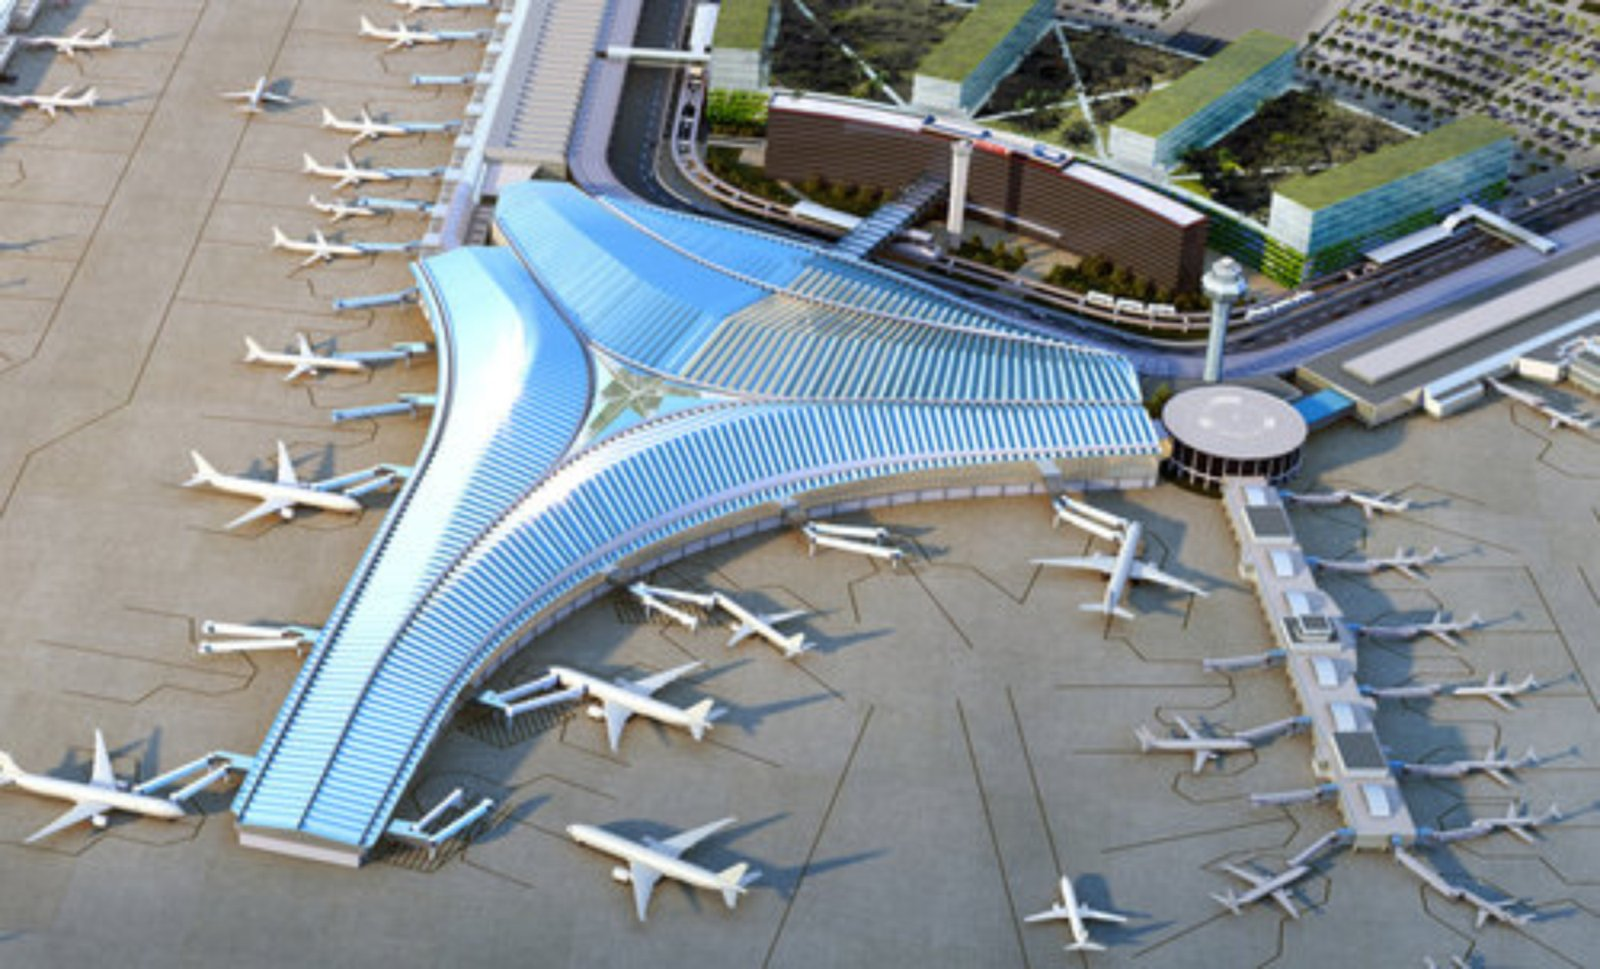 Chicago's O'Hare Airport